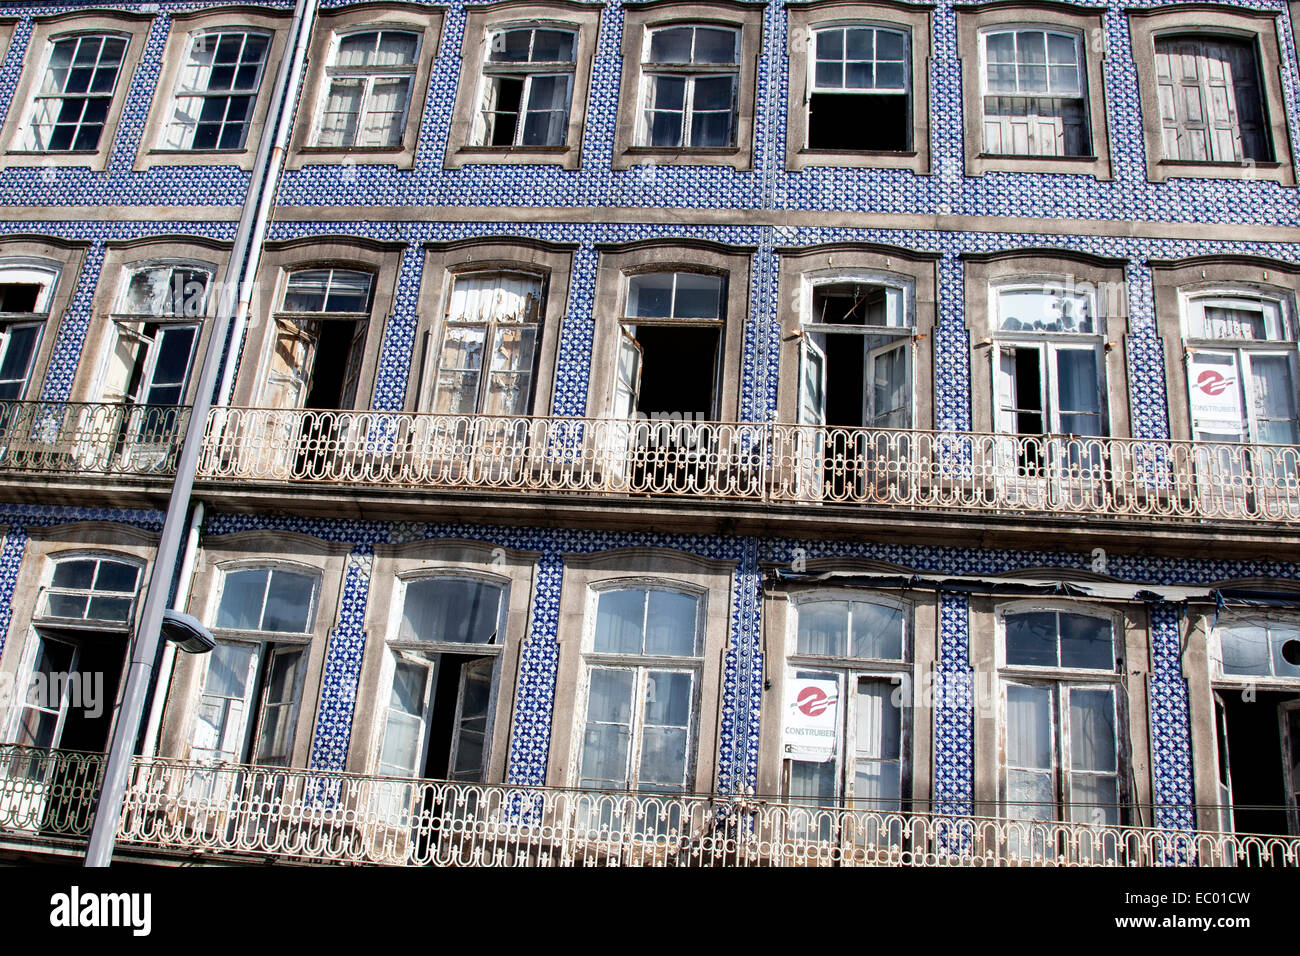 Abandon building in the centre of Porto, Portugal. - Stock Image